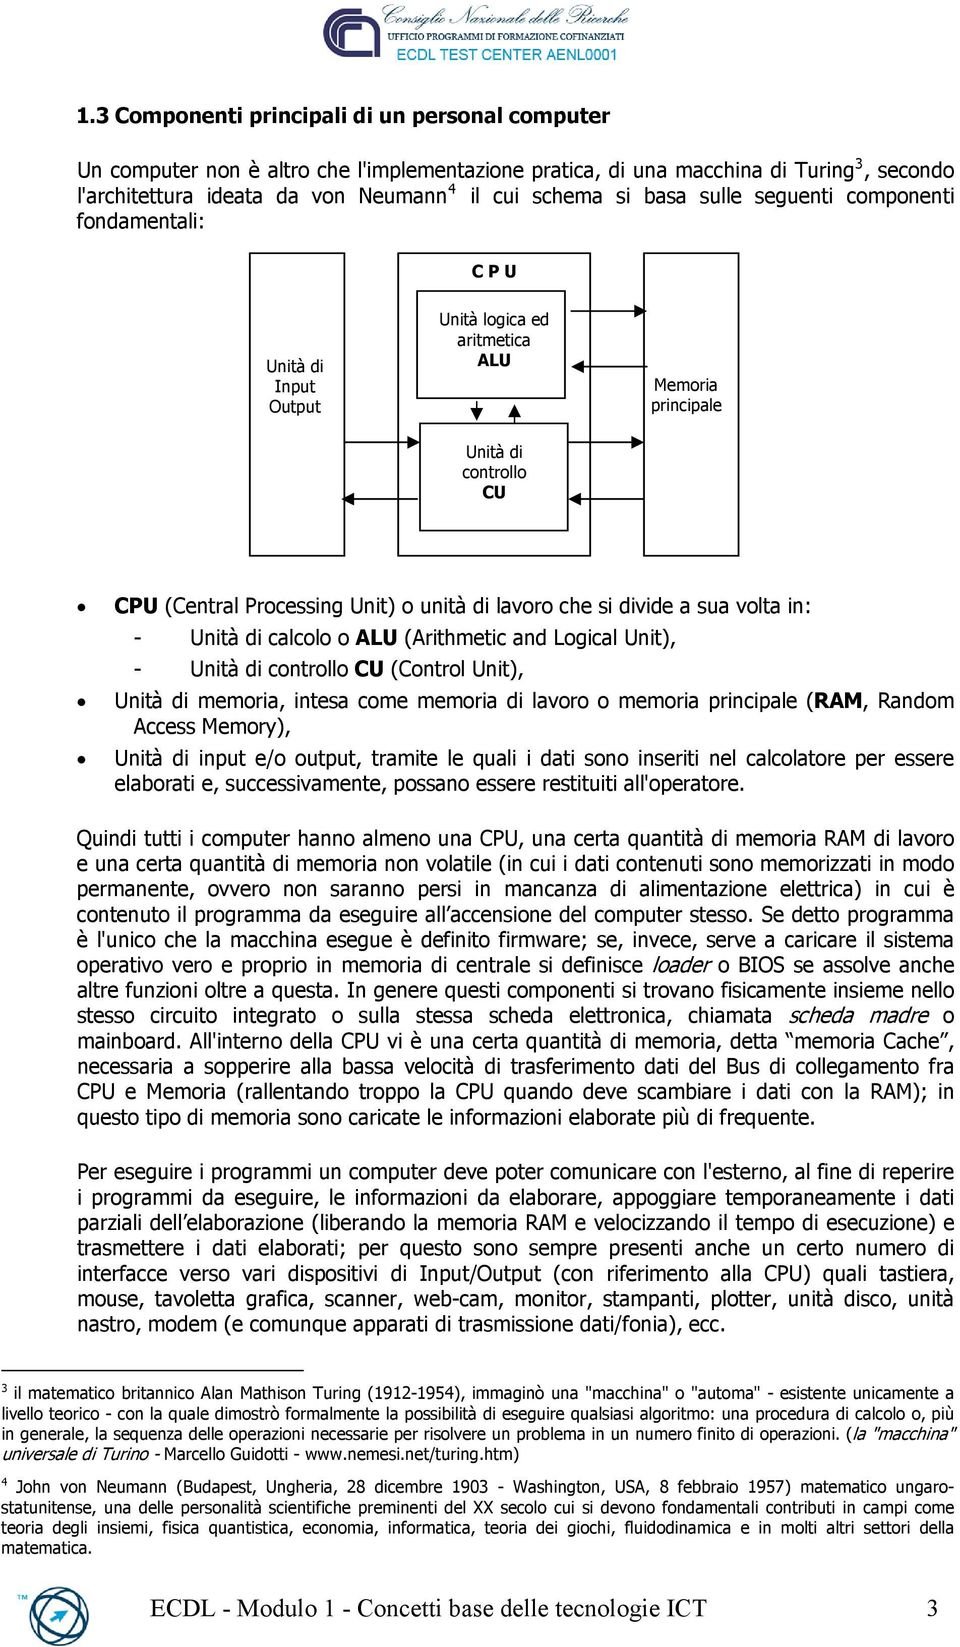 divide a sua volta in: - Unità di calcolo o ALU (Arithmetic and Logical Unit), - Unità di controllo CU (Control Unit), Unità di memoria, intesa come memoria di lavoro o memoria principale (RAM,